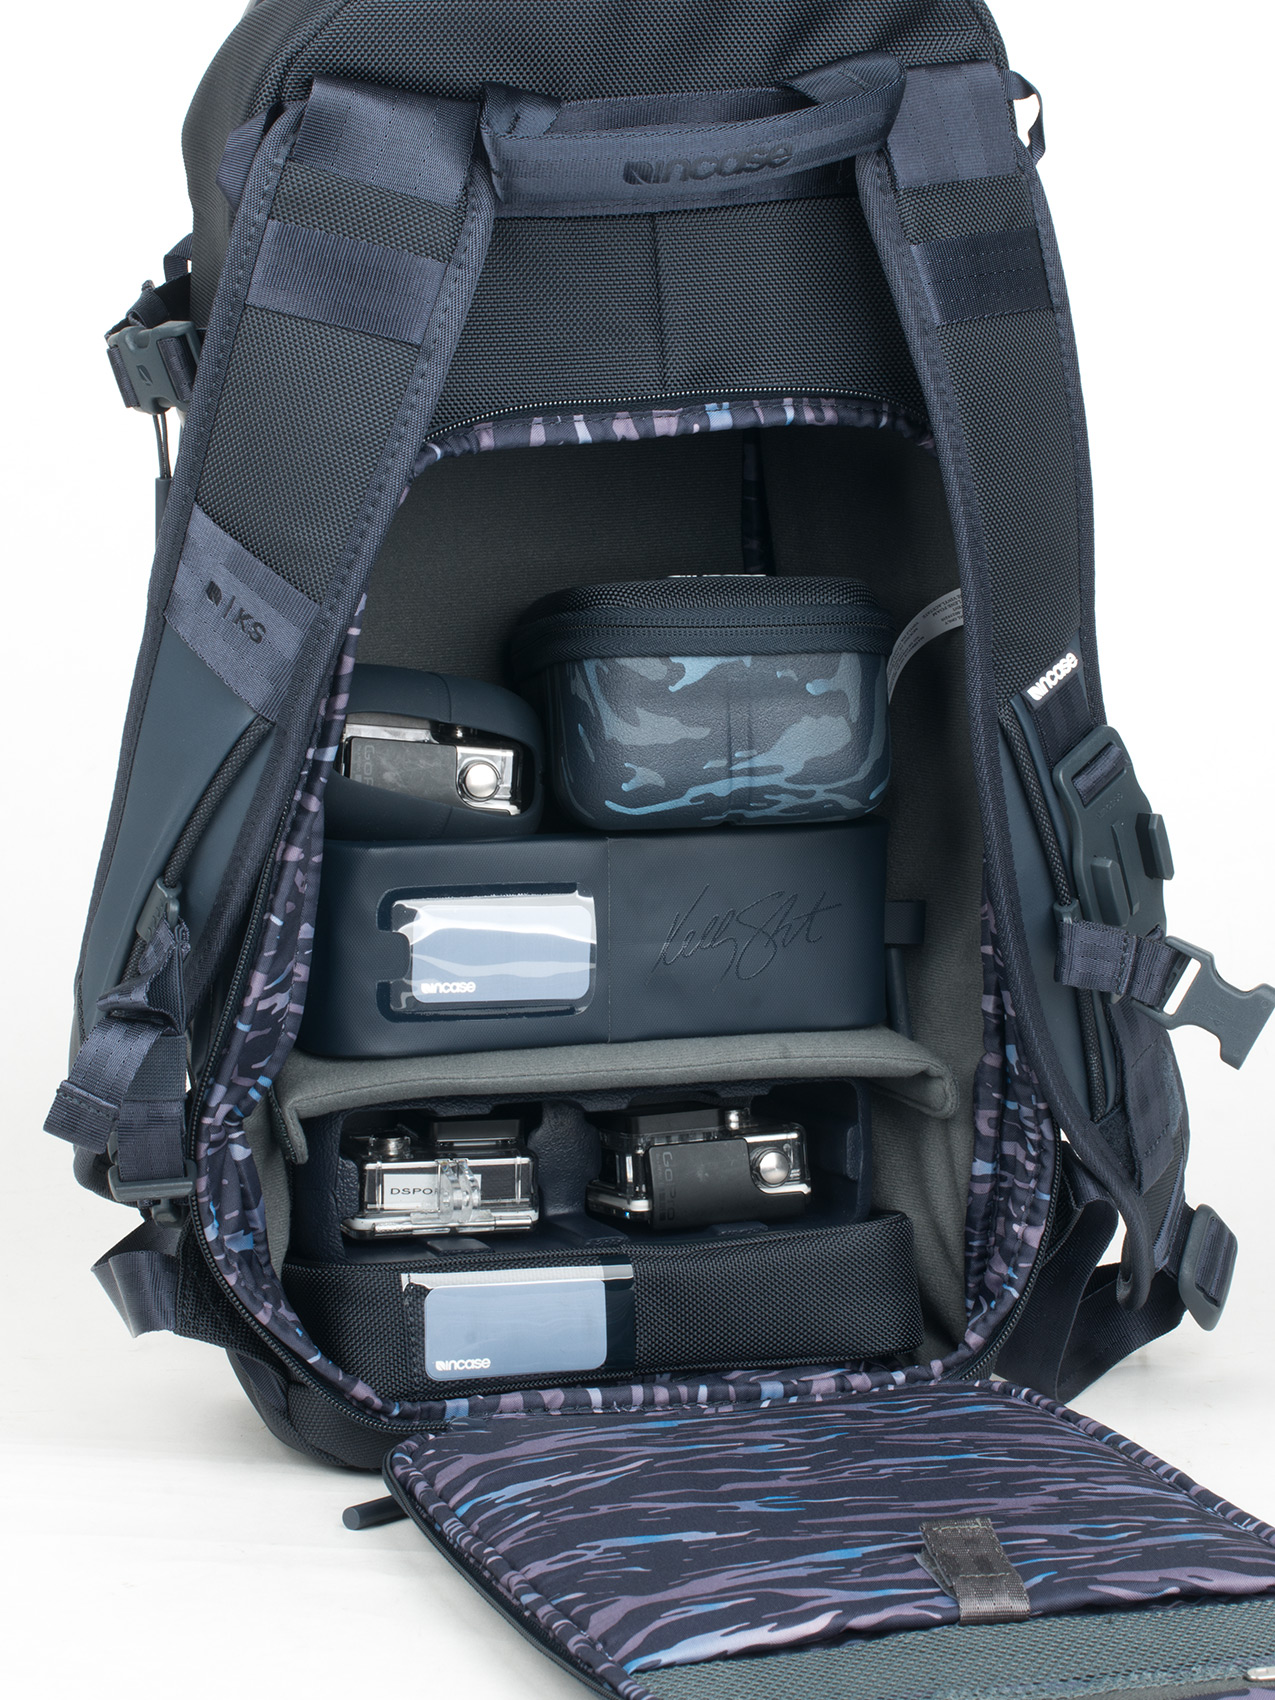 Inside compartments for the Incase Kelly Slater Collection